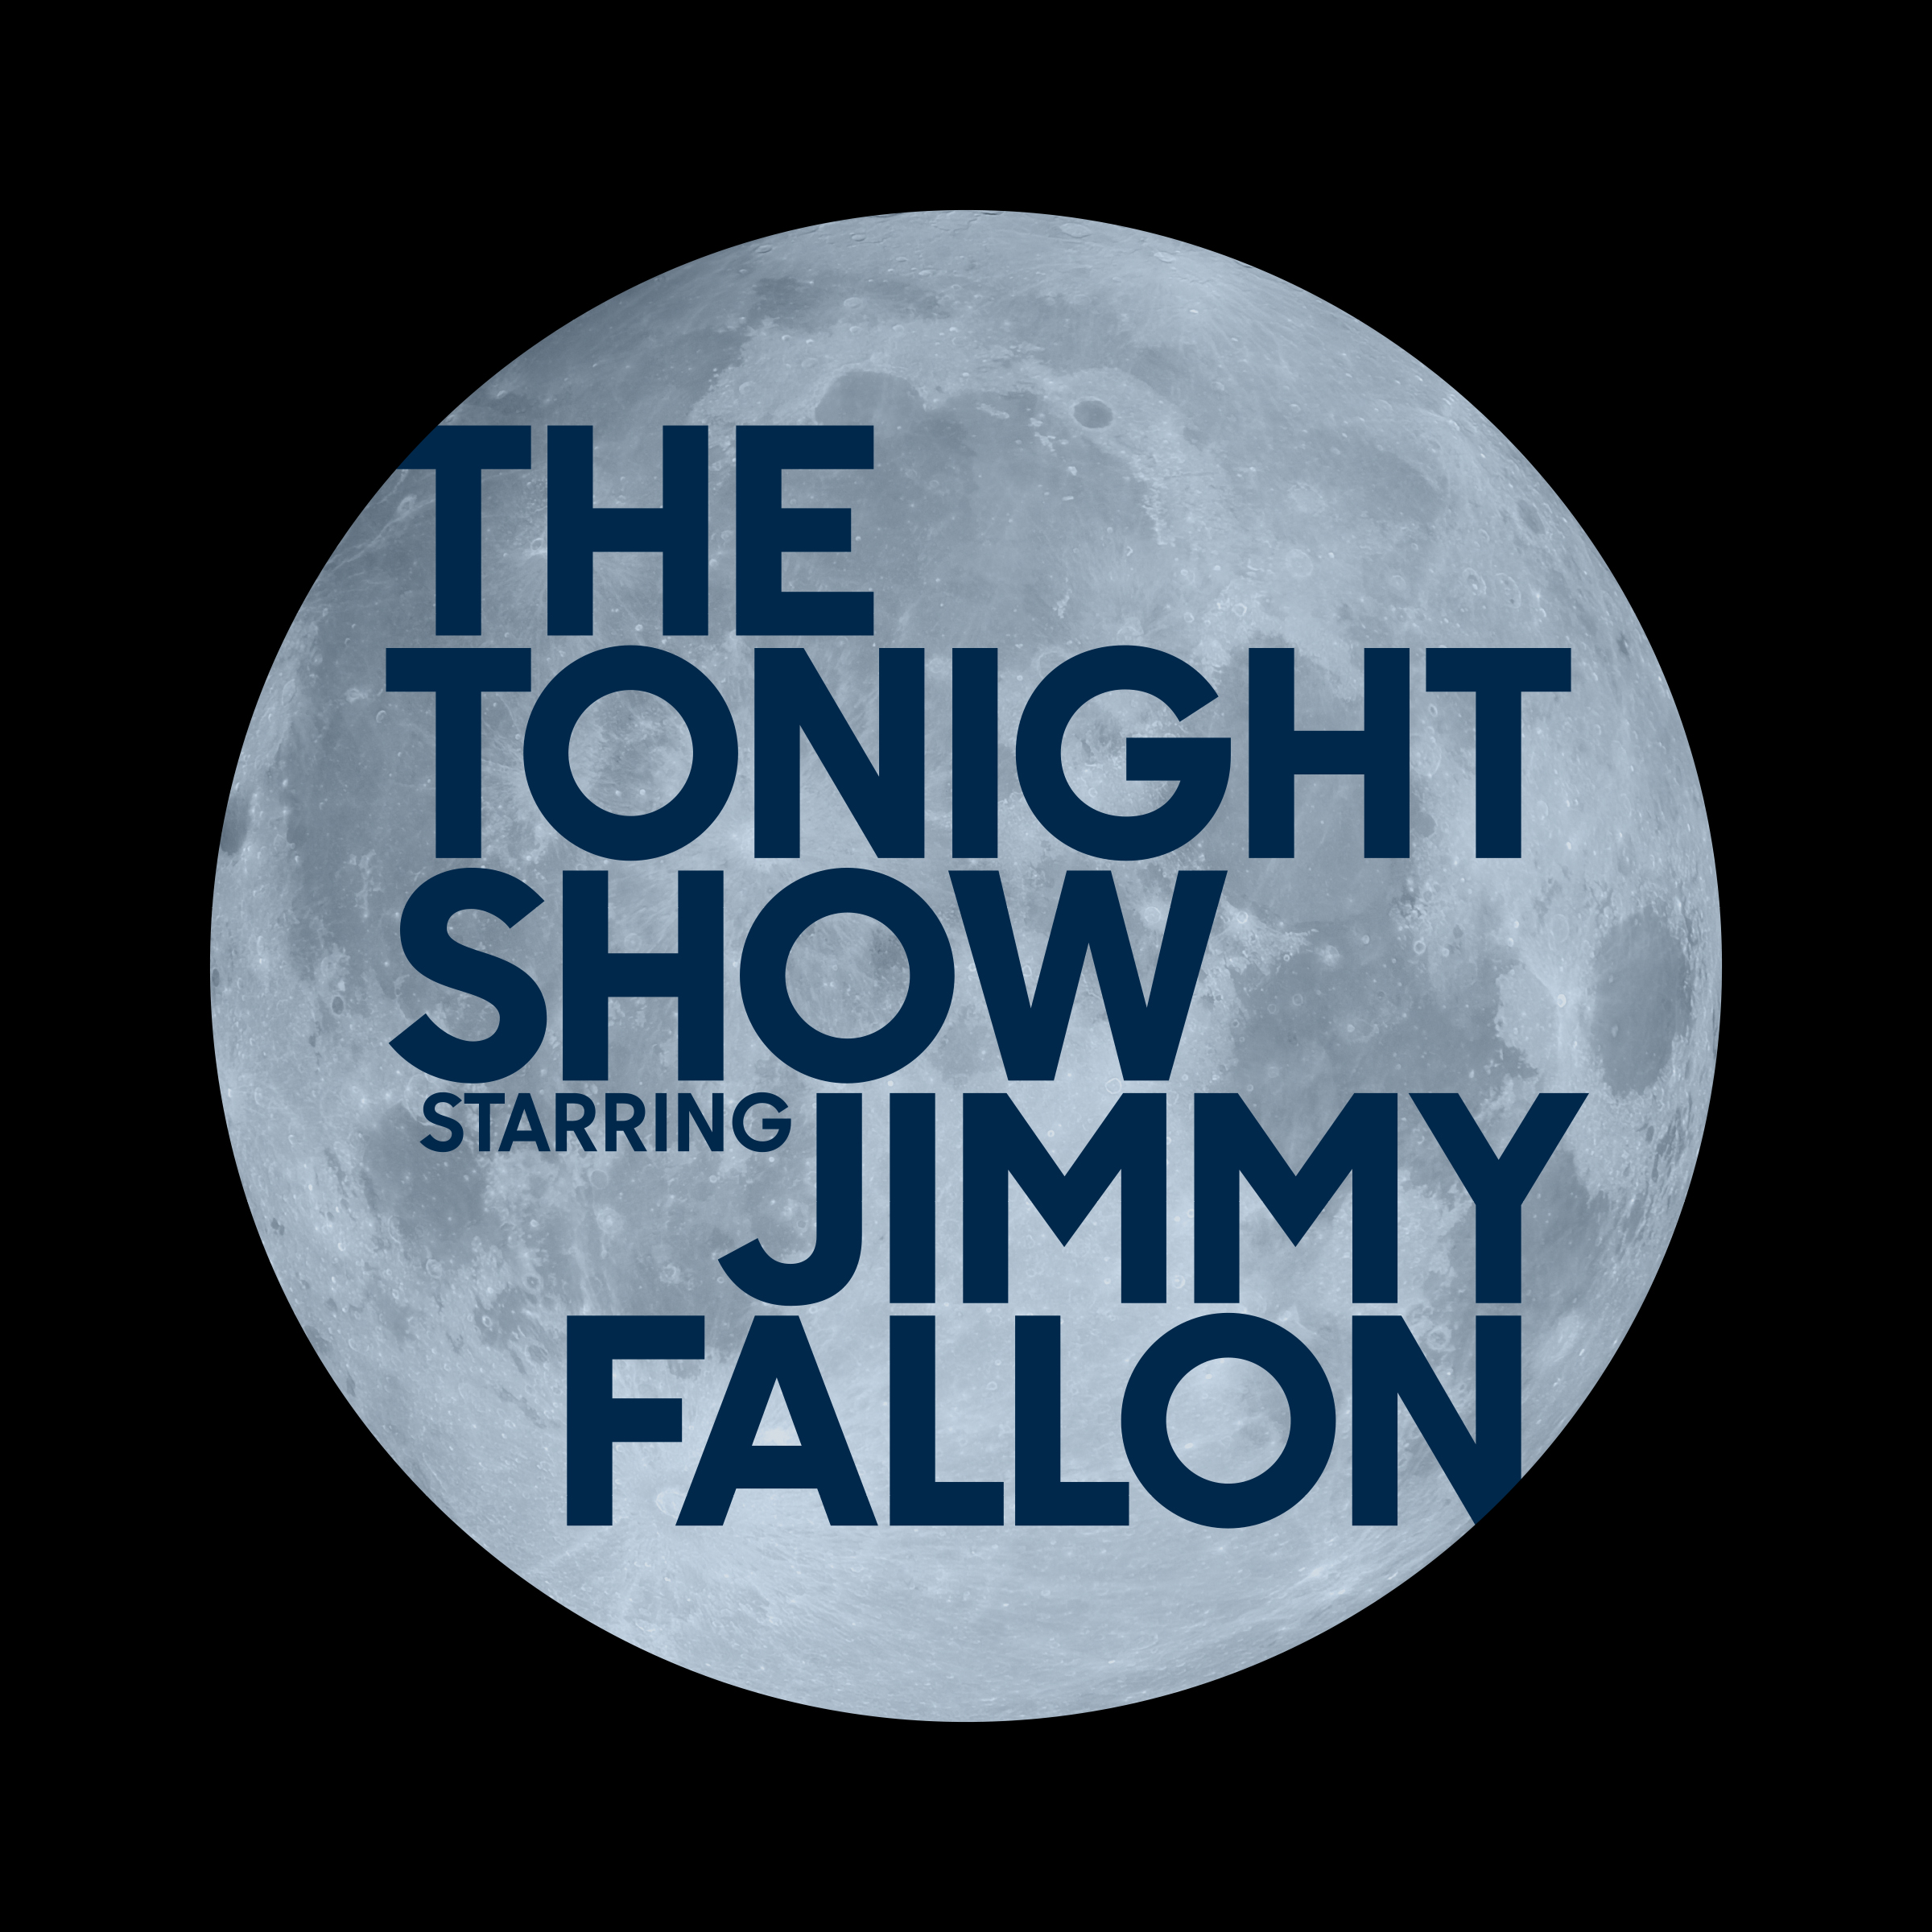 tonight_show_with_jimmy_fallon_logo_detail.jpeg